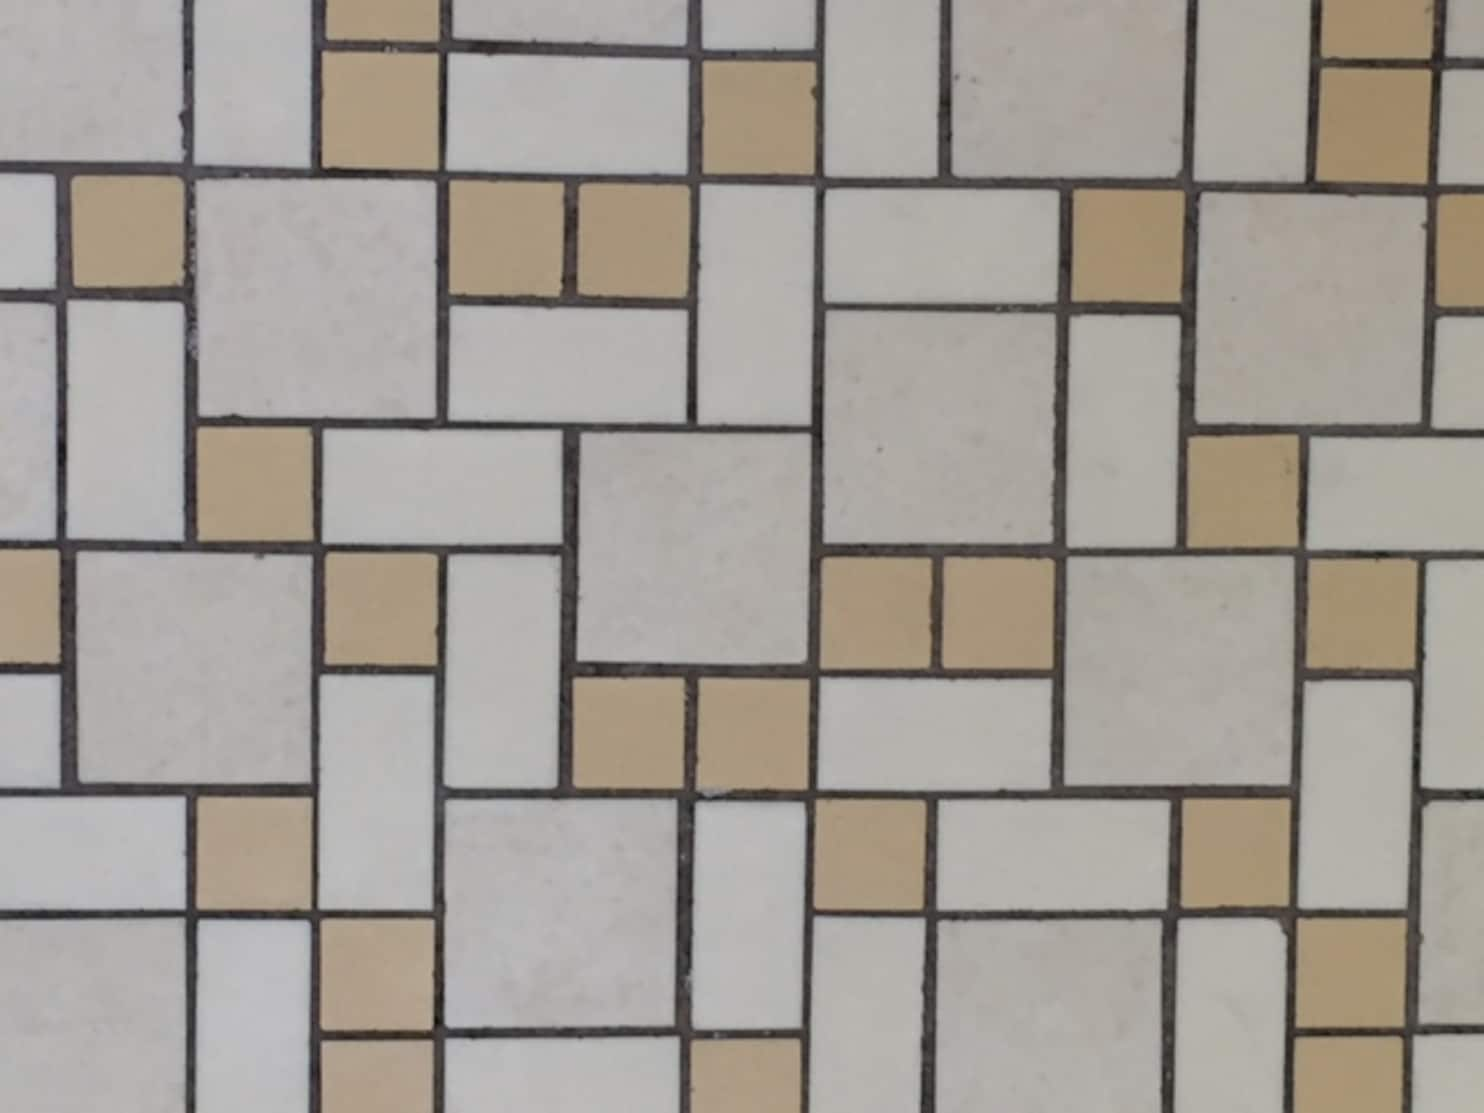 How To Clean Bathroom Tile Grout How To Clean Old Tile Grout That S Become Unsightly The